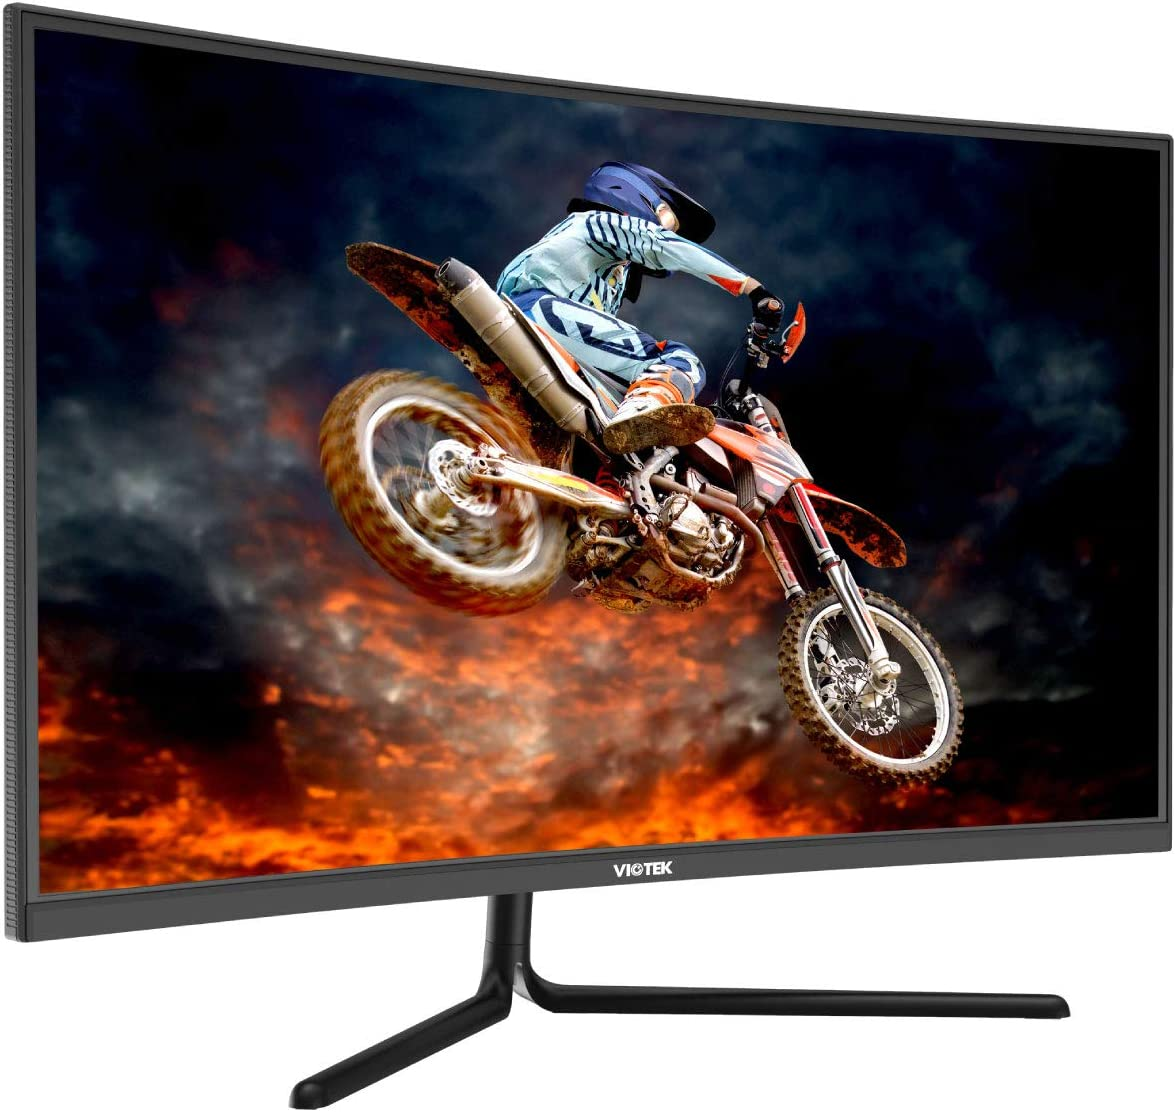 VIOTEK GNV32DB 32″ (2560 x 1440p) 144Hz Curved Gaming Monitor with G-Sync-Ready FreeSync